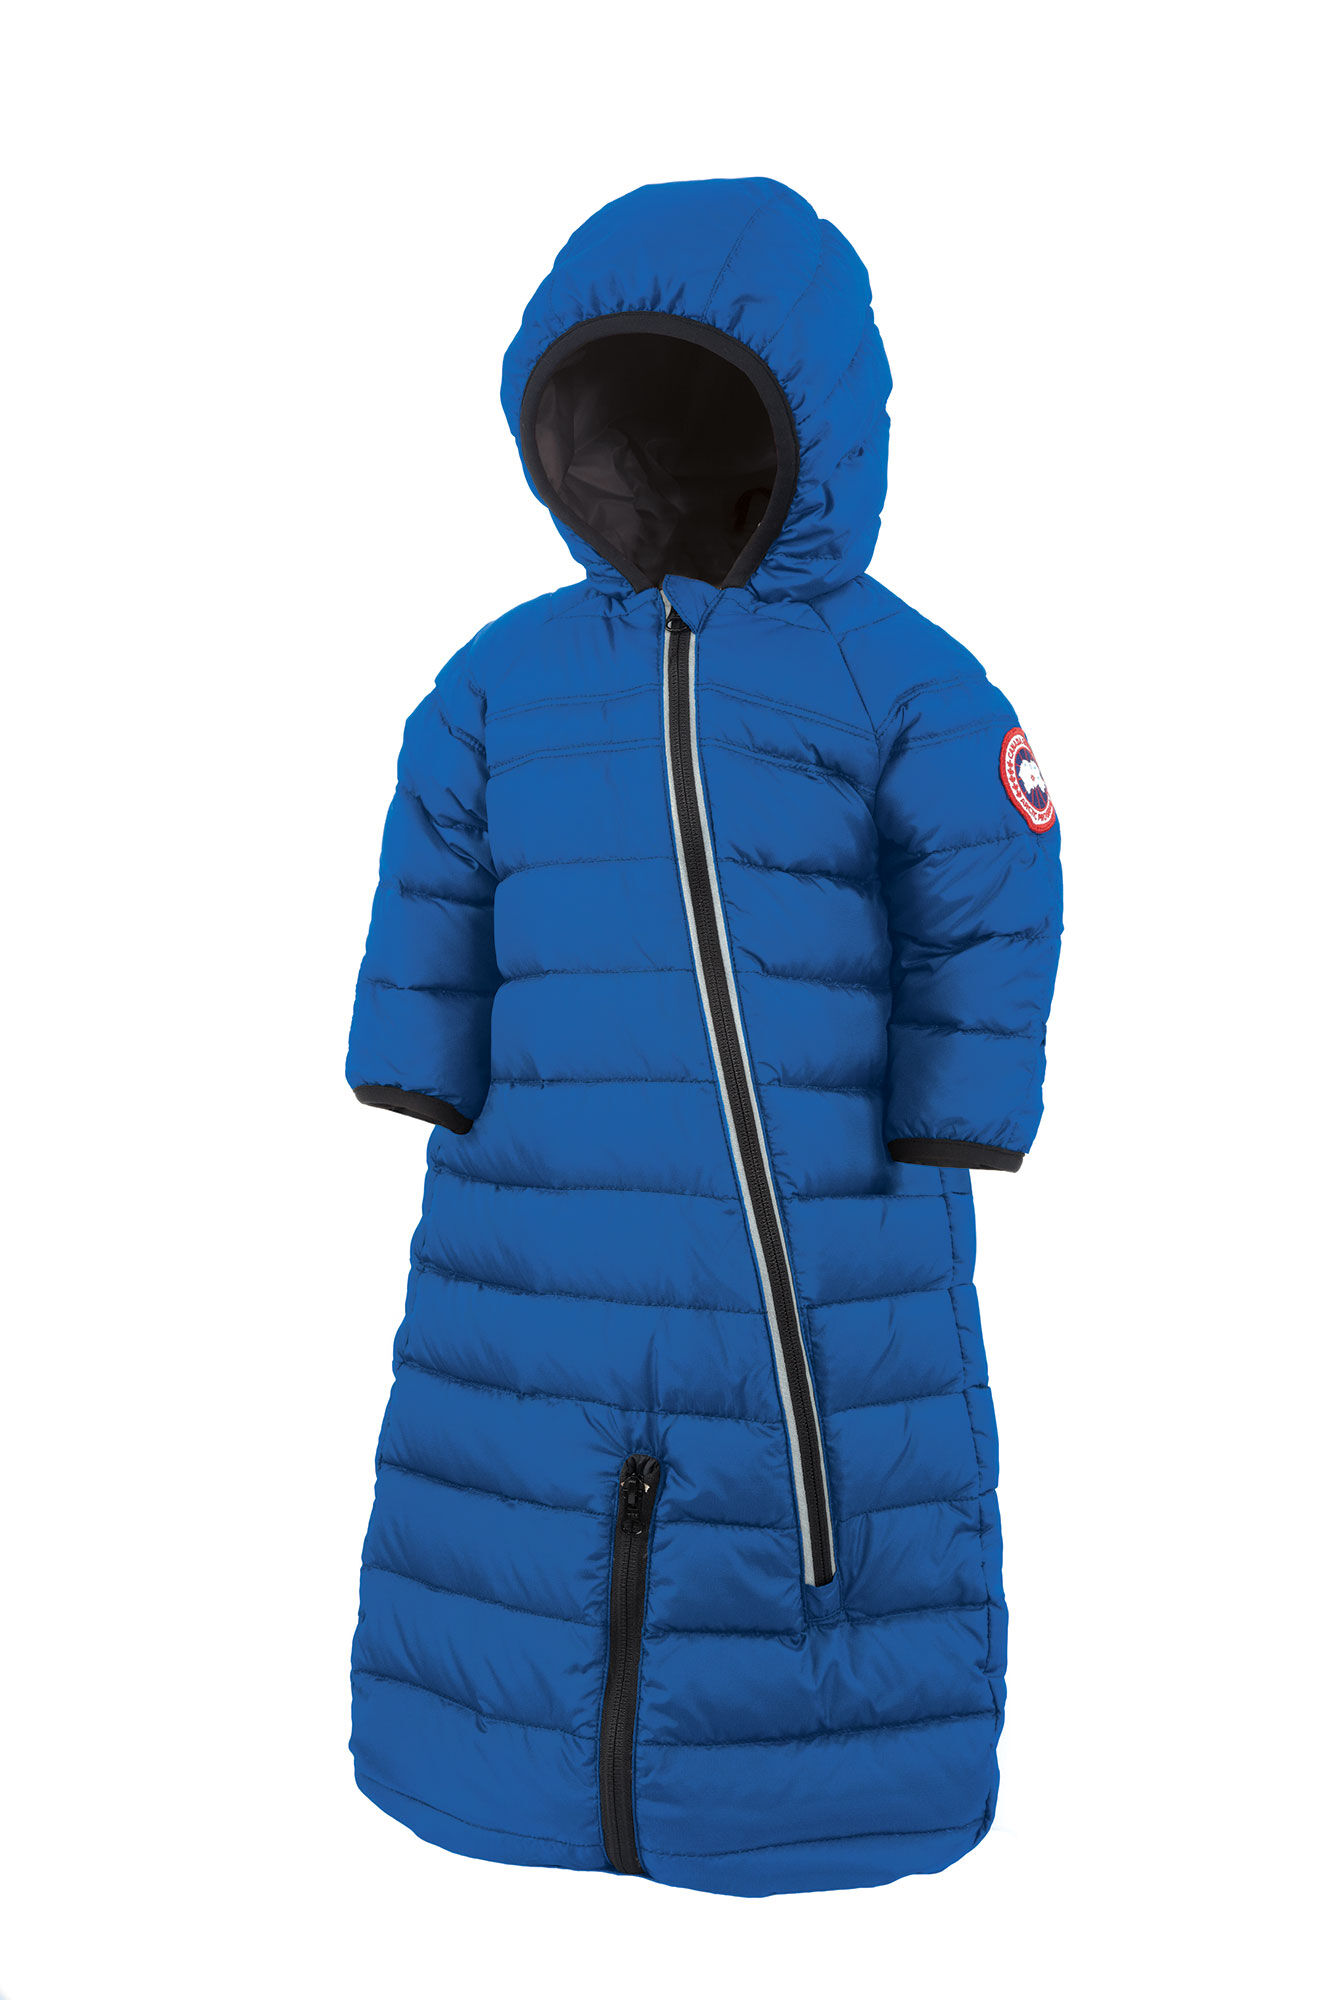 Canada Goose mens outlet official - Kids Extreme Weather Outerwear | Canada Goose?